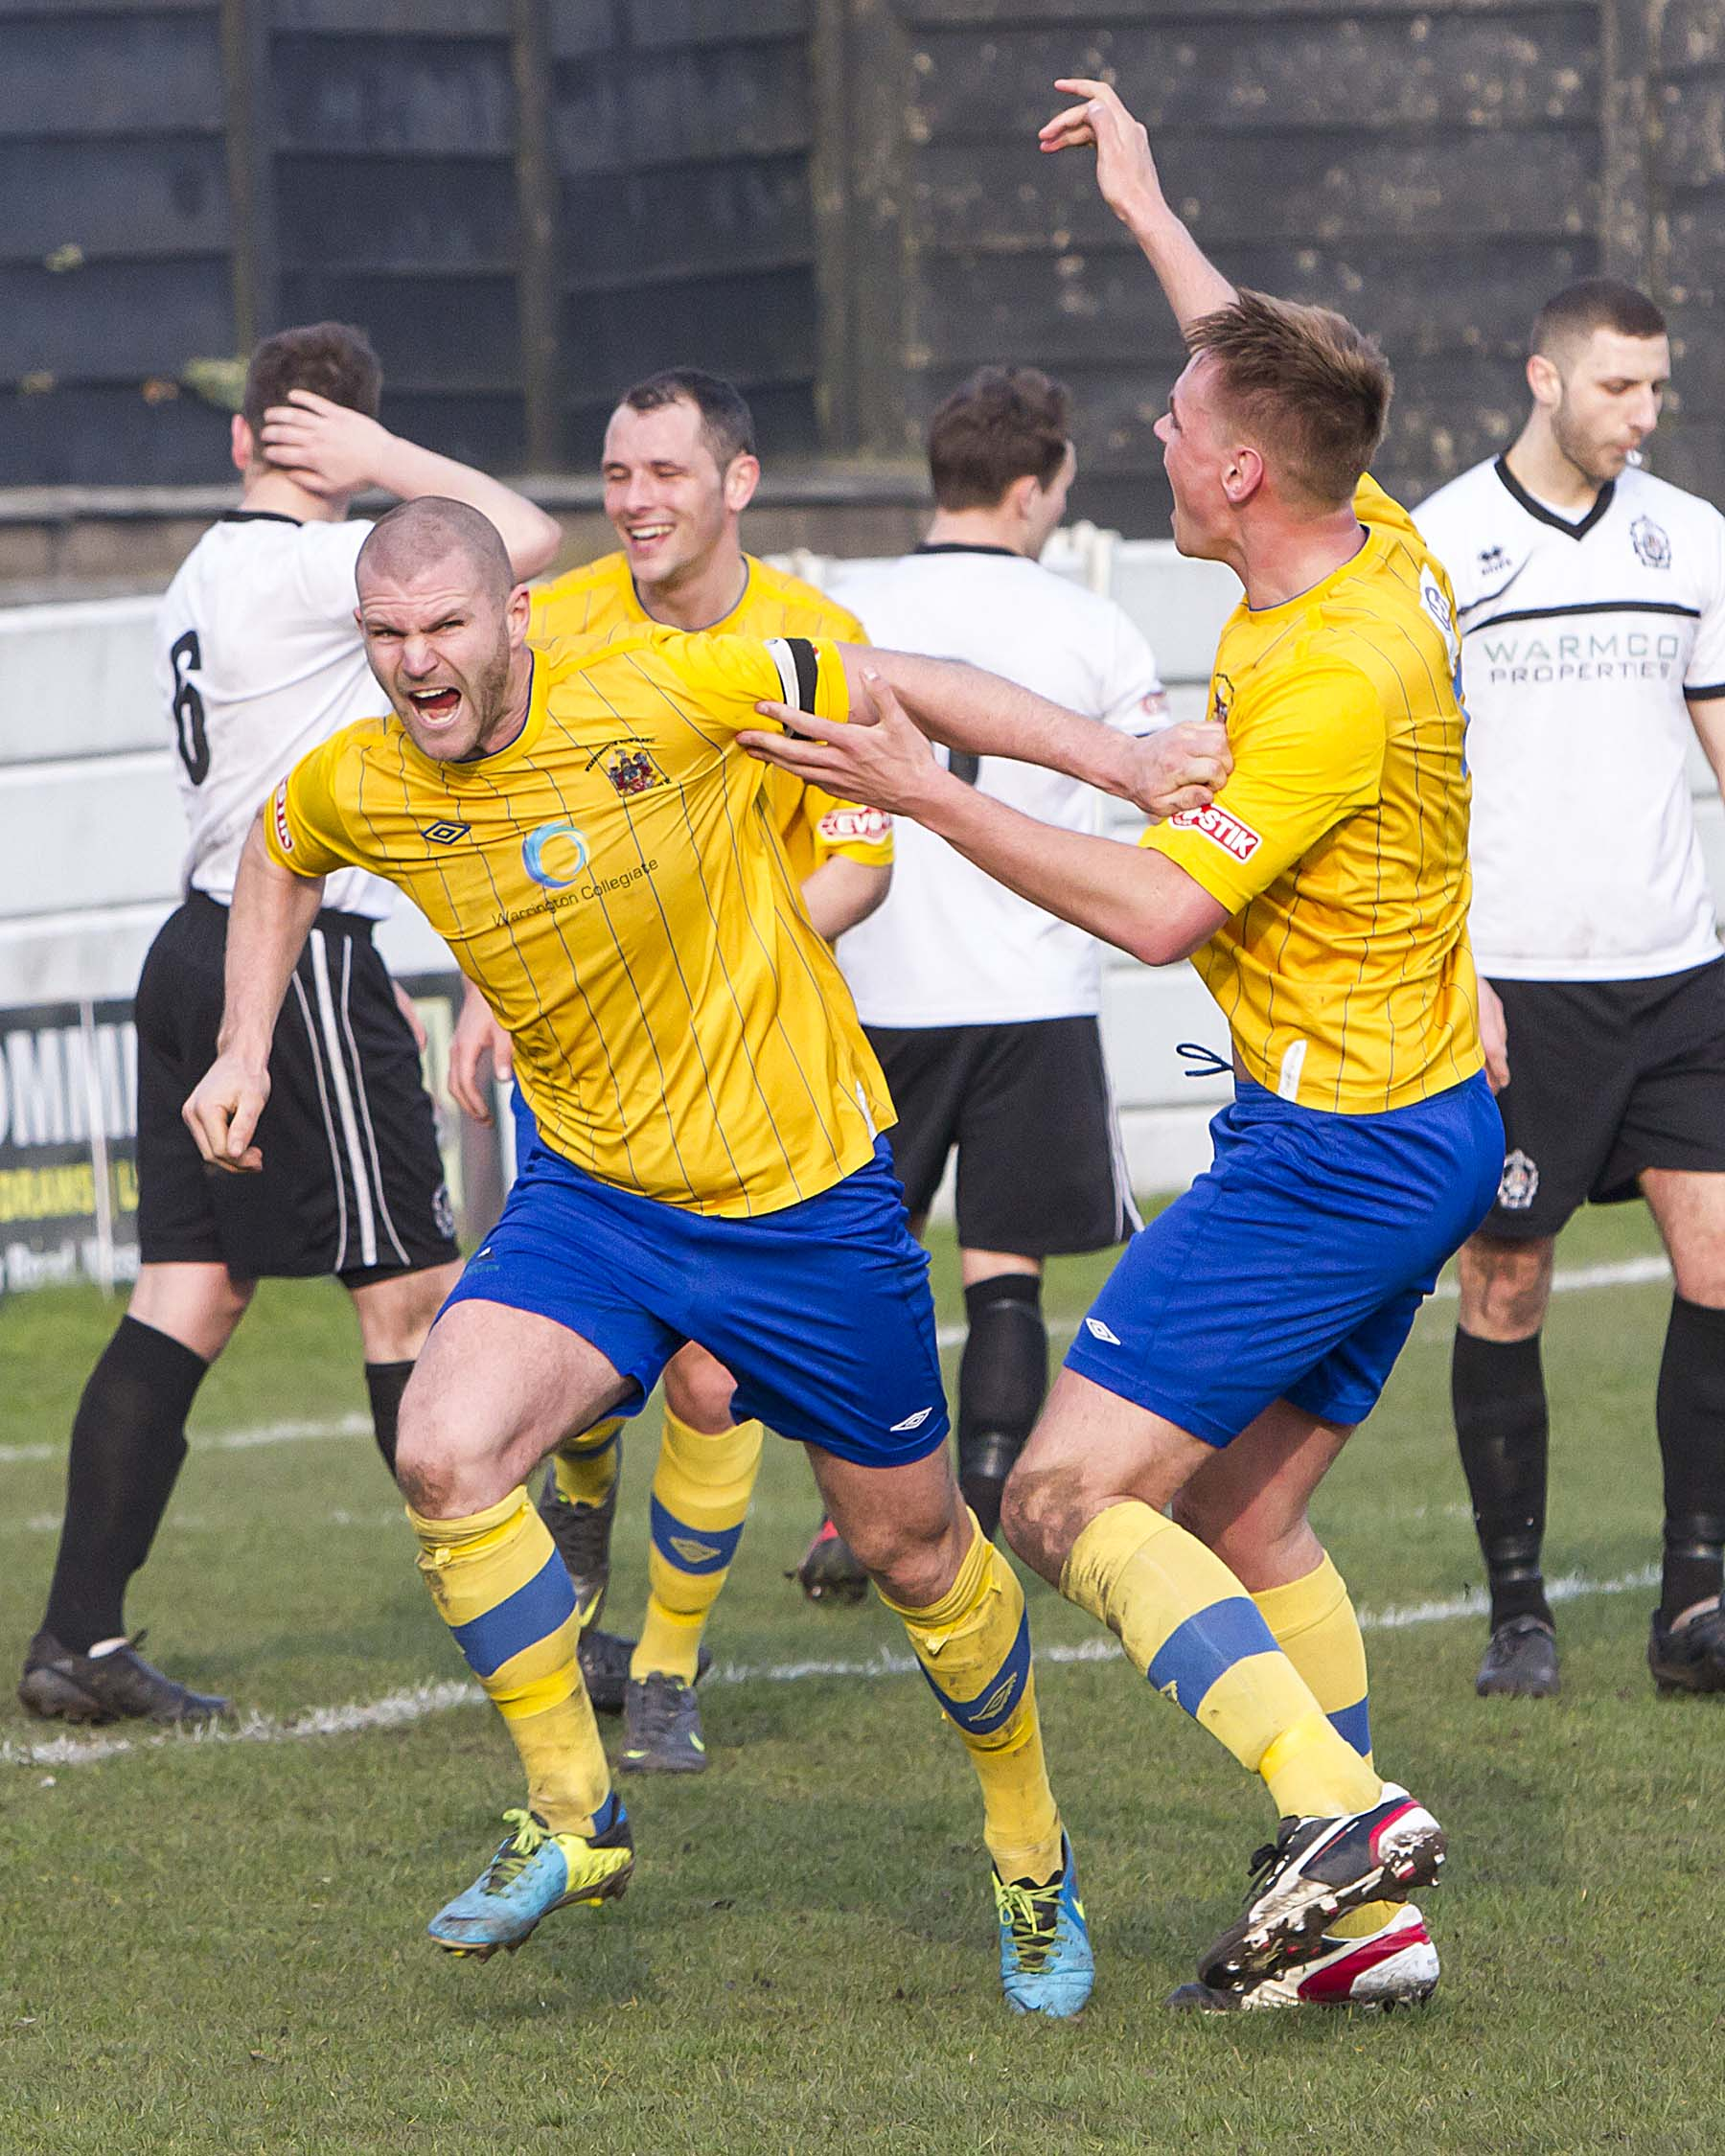 Unfortunately Town's celebrations after twice taking the lead were a little premature. Picture by John Hopkins